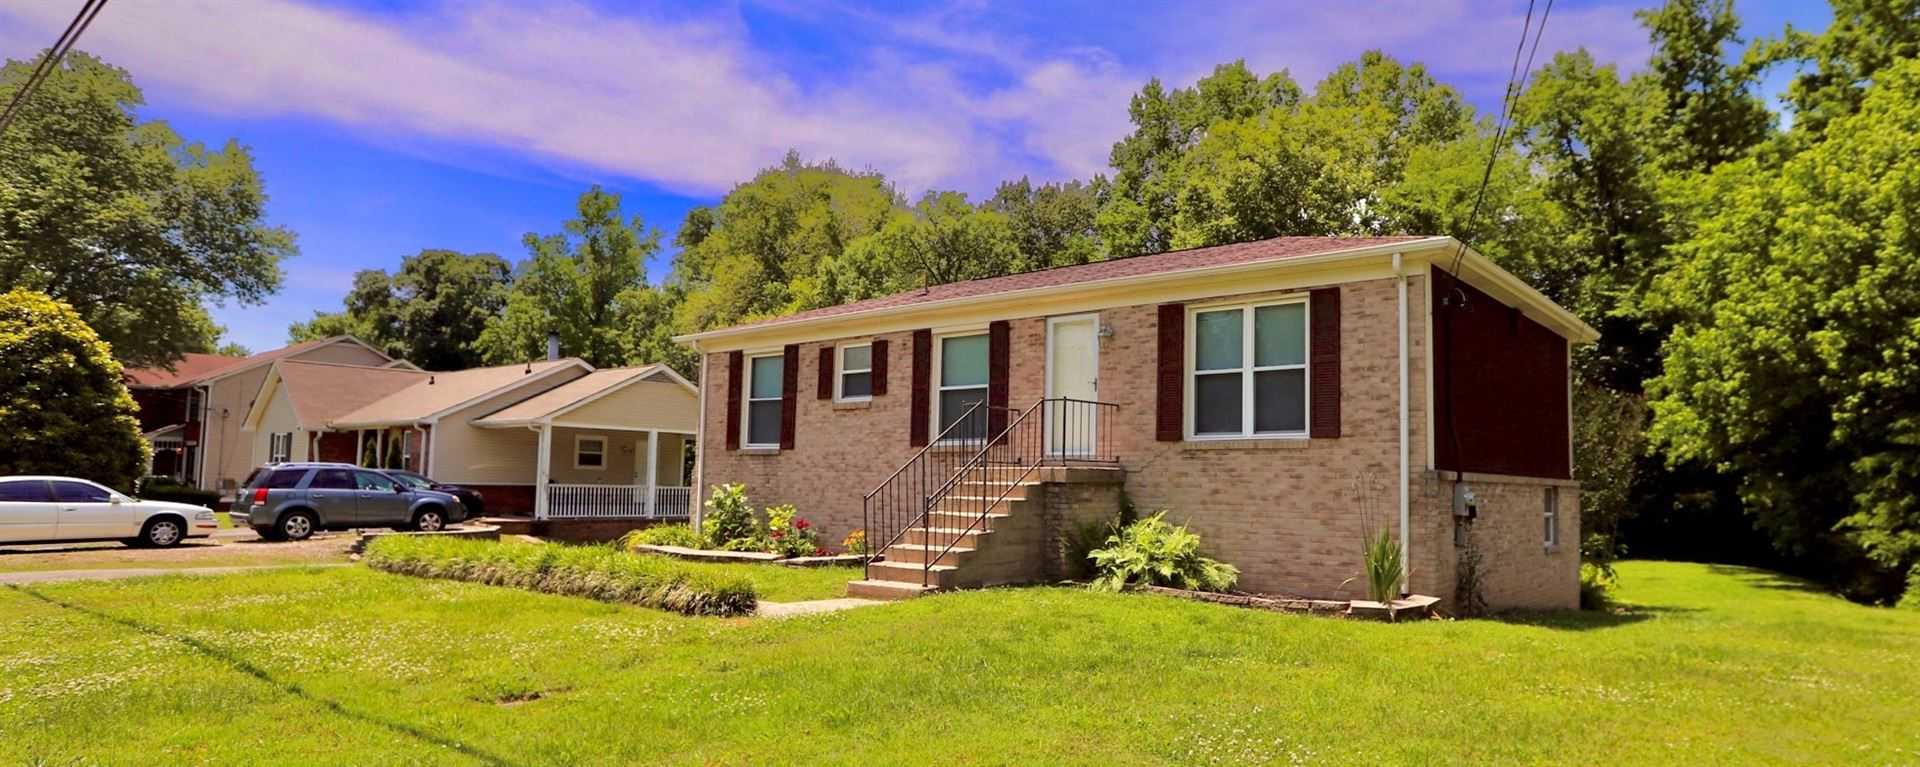 4732 Cascade Dr, Old Hickory, TN 37138 - MLS#: 2264987